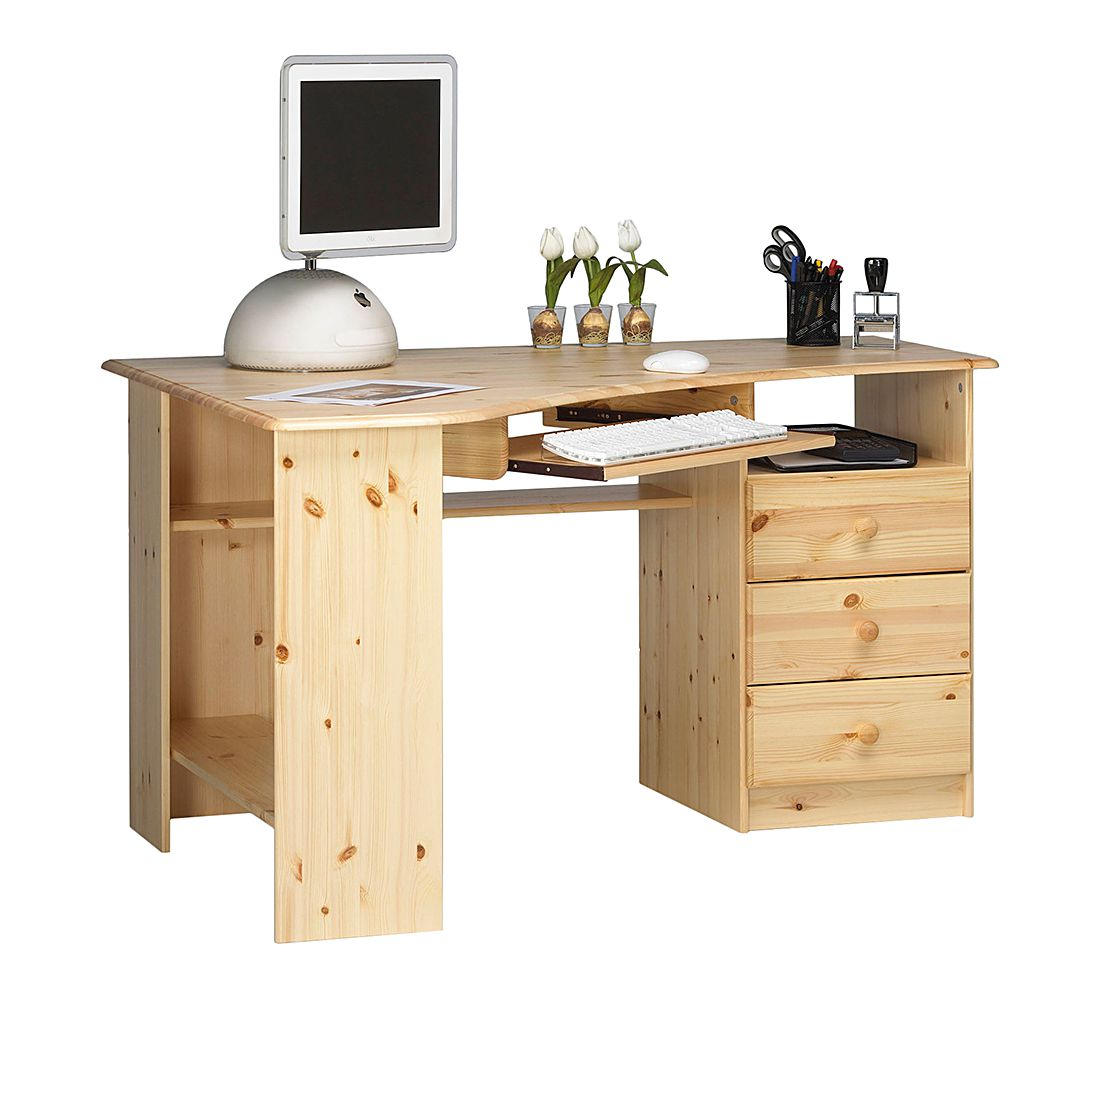 bureau enfant pin massif 3 tiroirs alex prix et offres. Black Bedroom Furniture Sets. Home Design Ideas